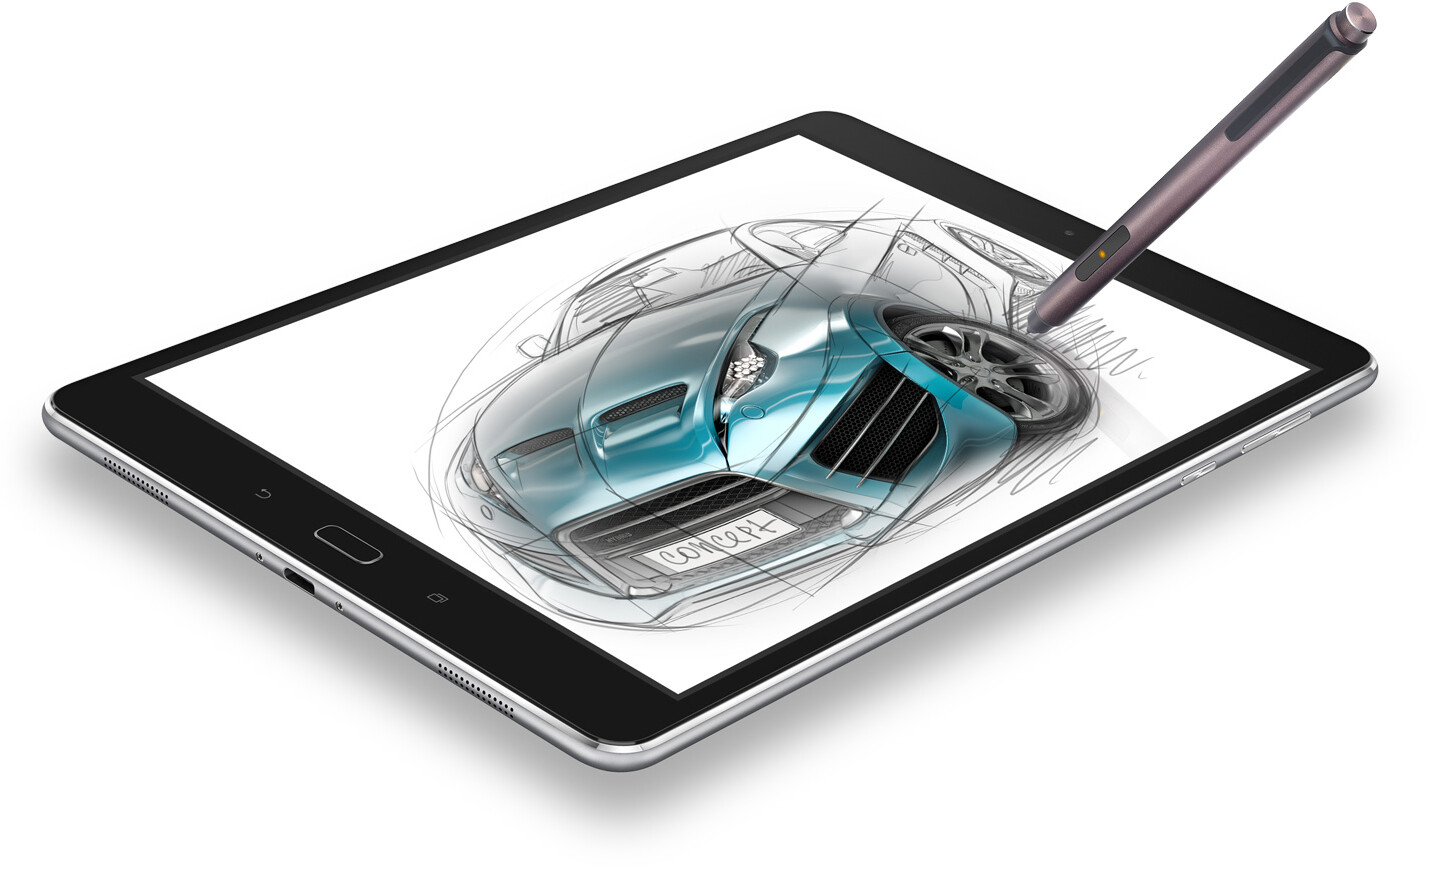 ultra thin asus zenpad 3s 10 coming soon to the us. Black Bedroom Furniture Sets. Home Design Ideas